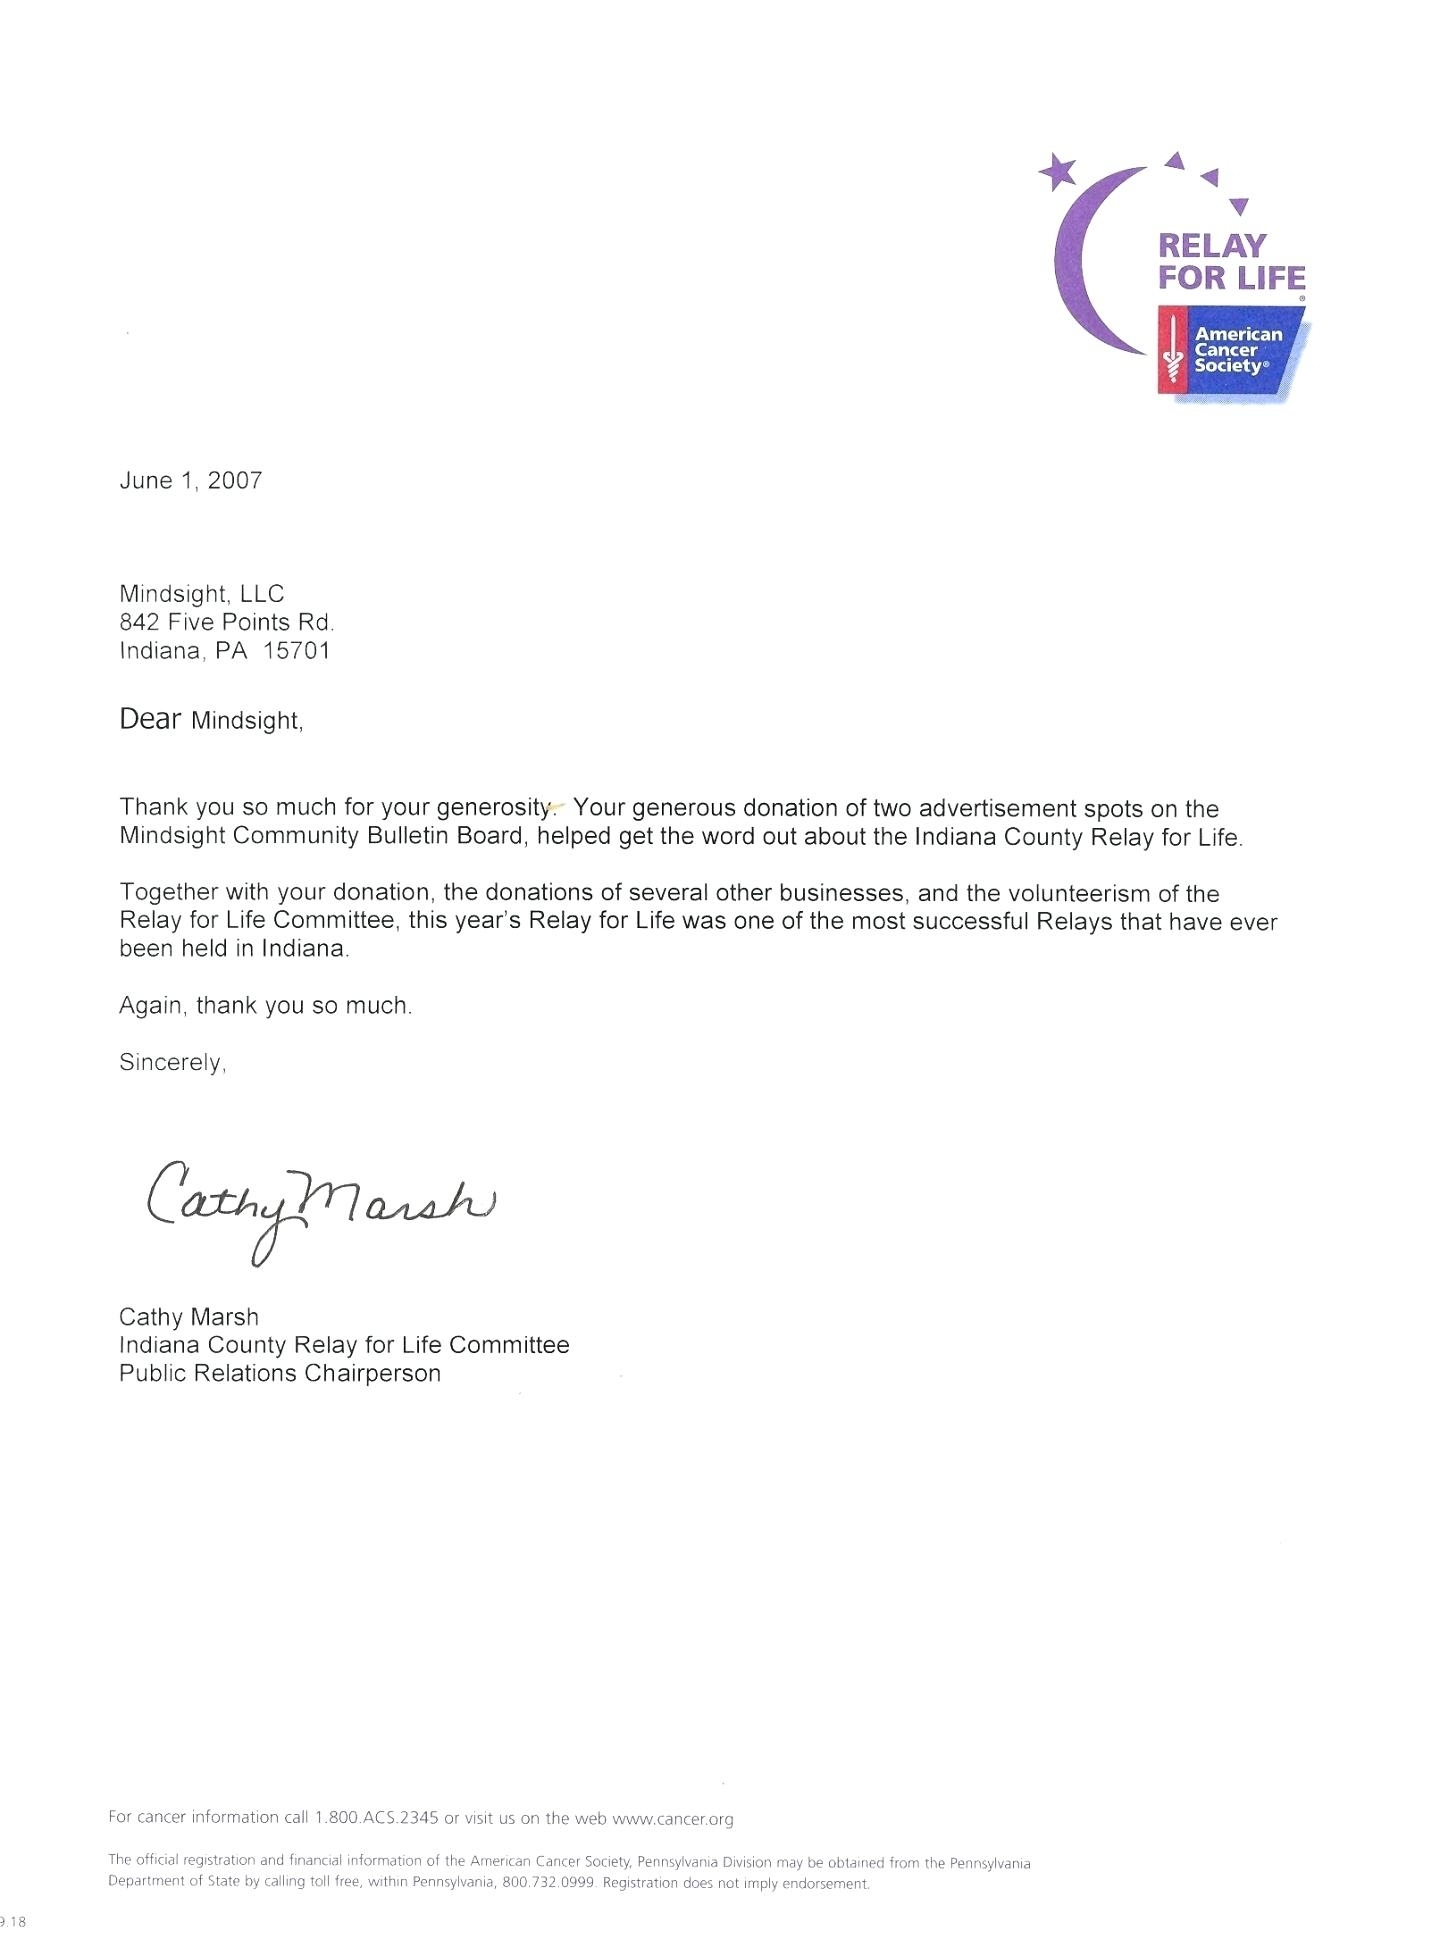 Relay for Life Donation Letter Template - Relay for Life Donation Letter